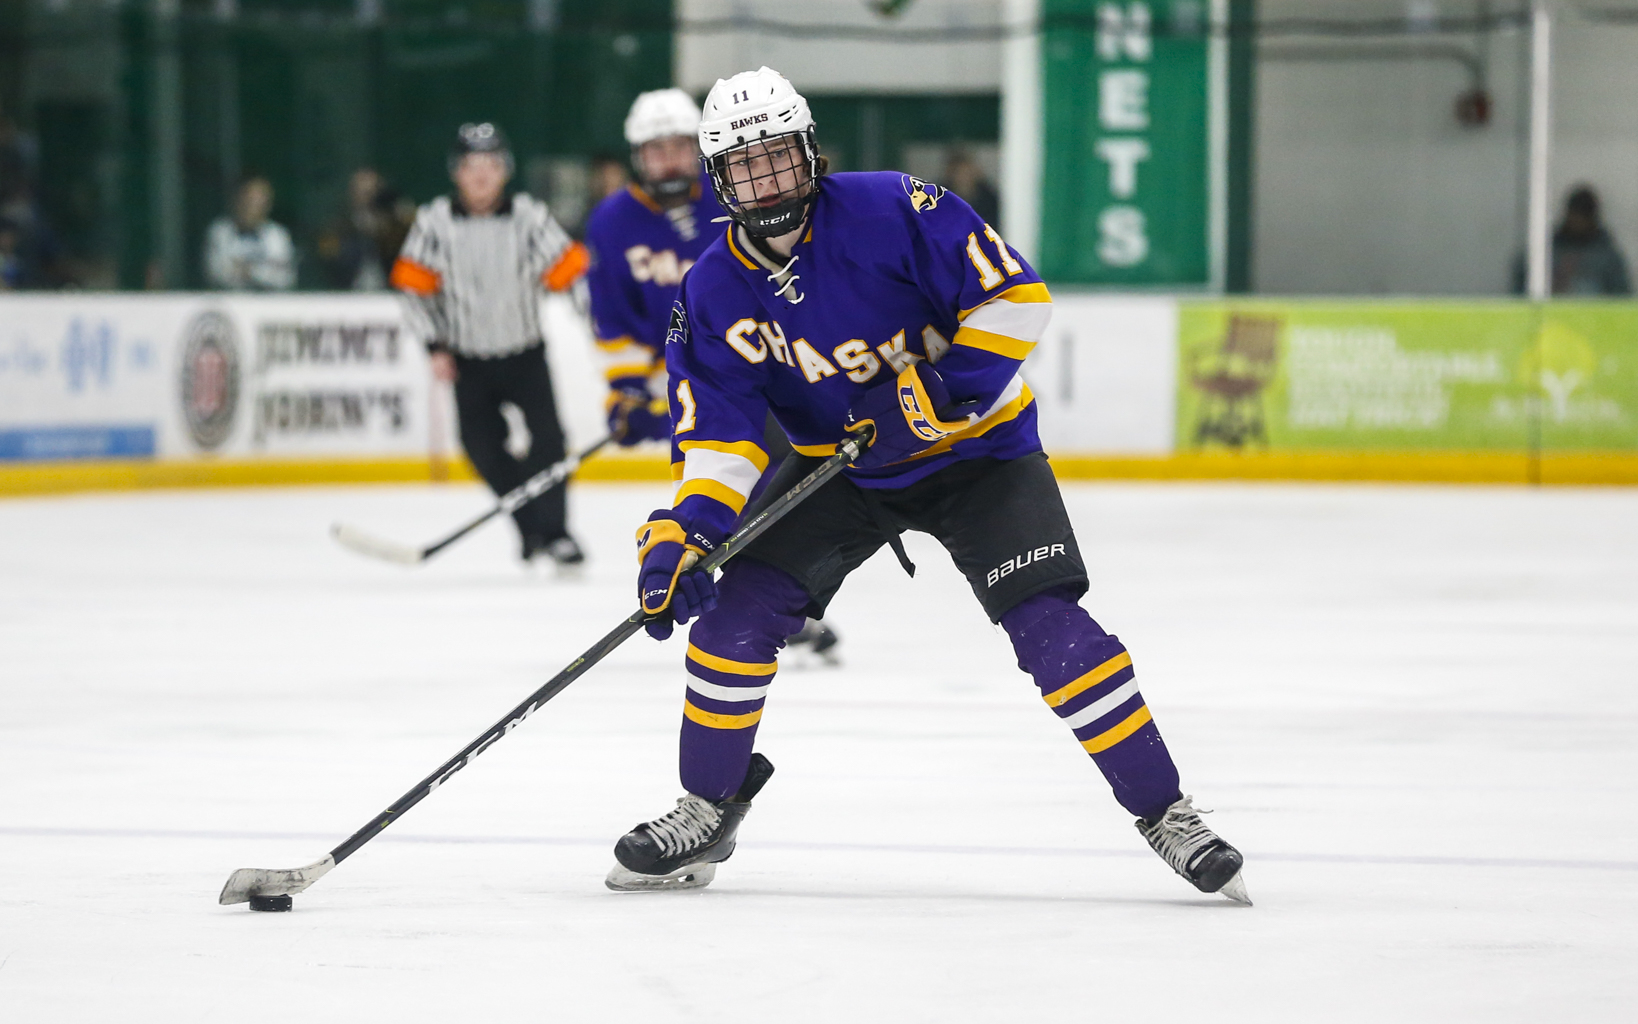 Chaska's Zach Seltun (11) looks for options on a power play against Prior Lake. Seltun had a goal and two assists in the Hawks' 4-1 victory over the Lakers Saturday afternoon at Braemar Arena. Photo by Jeff Lawler, SportsEngine